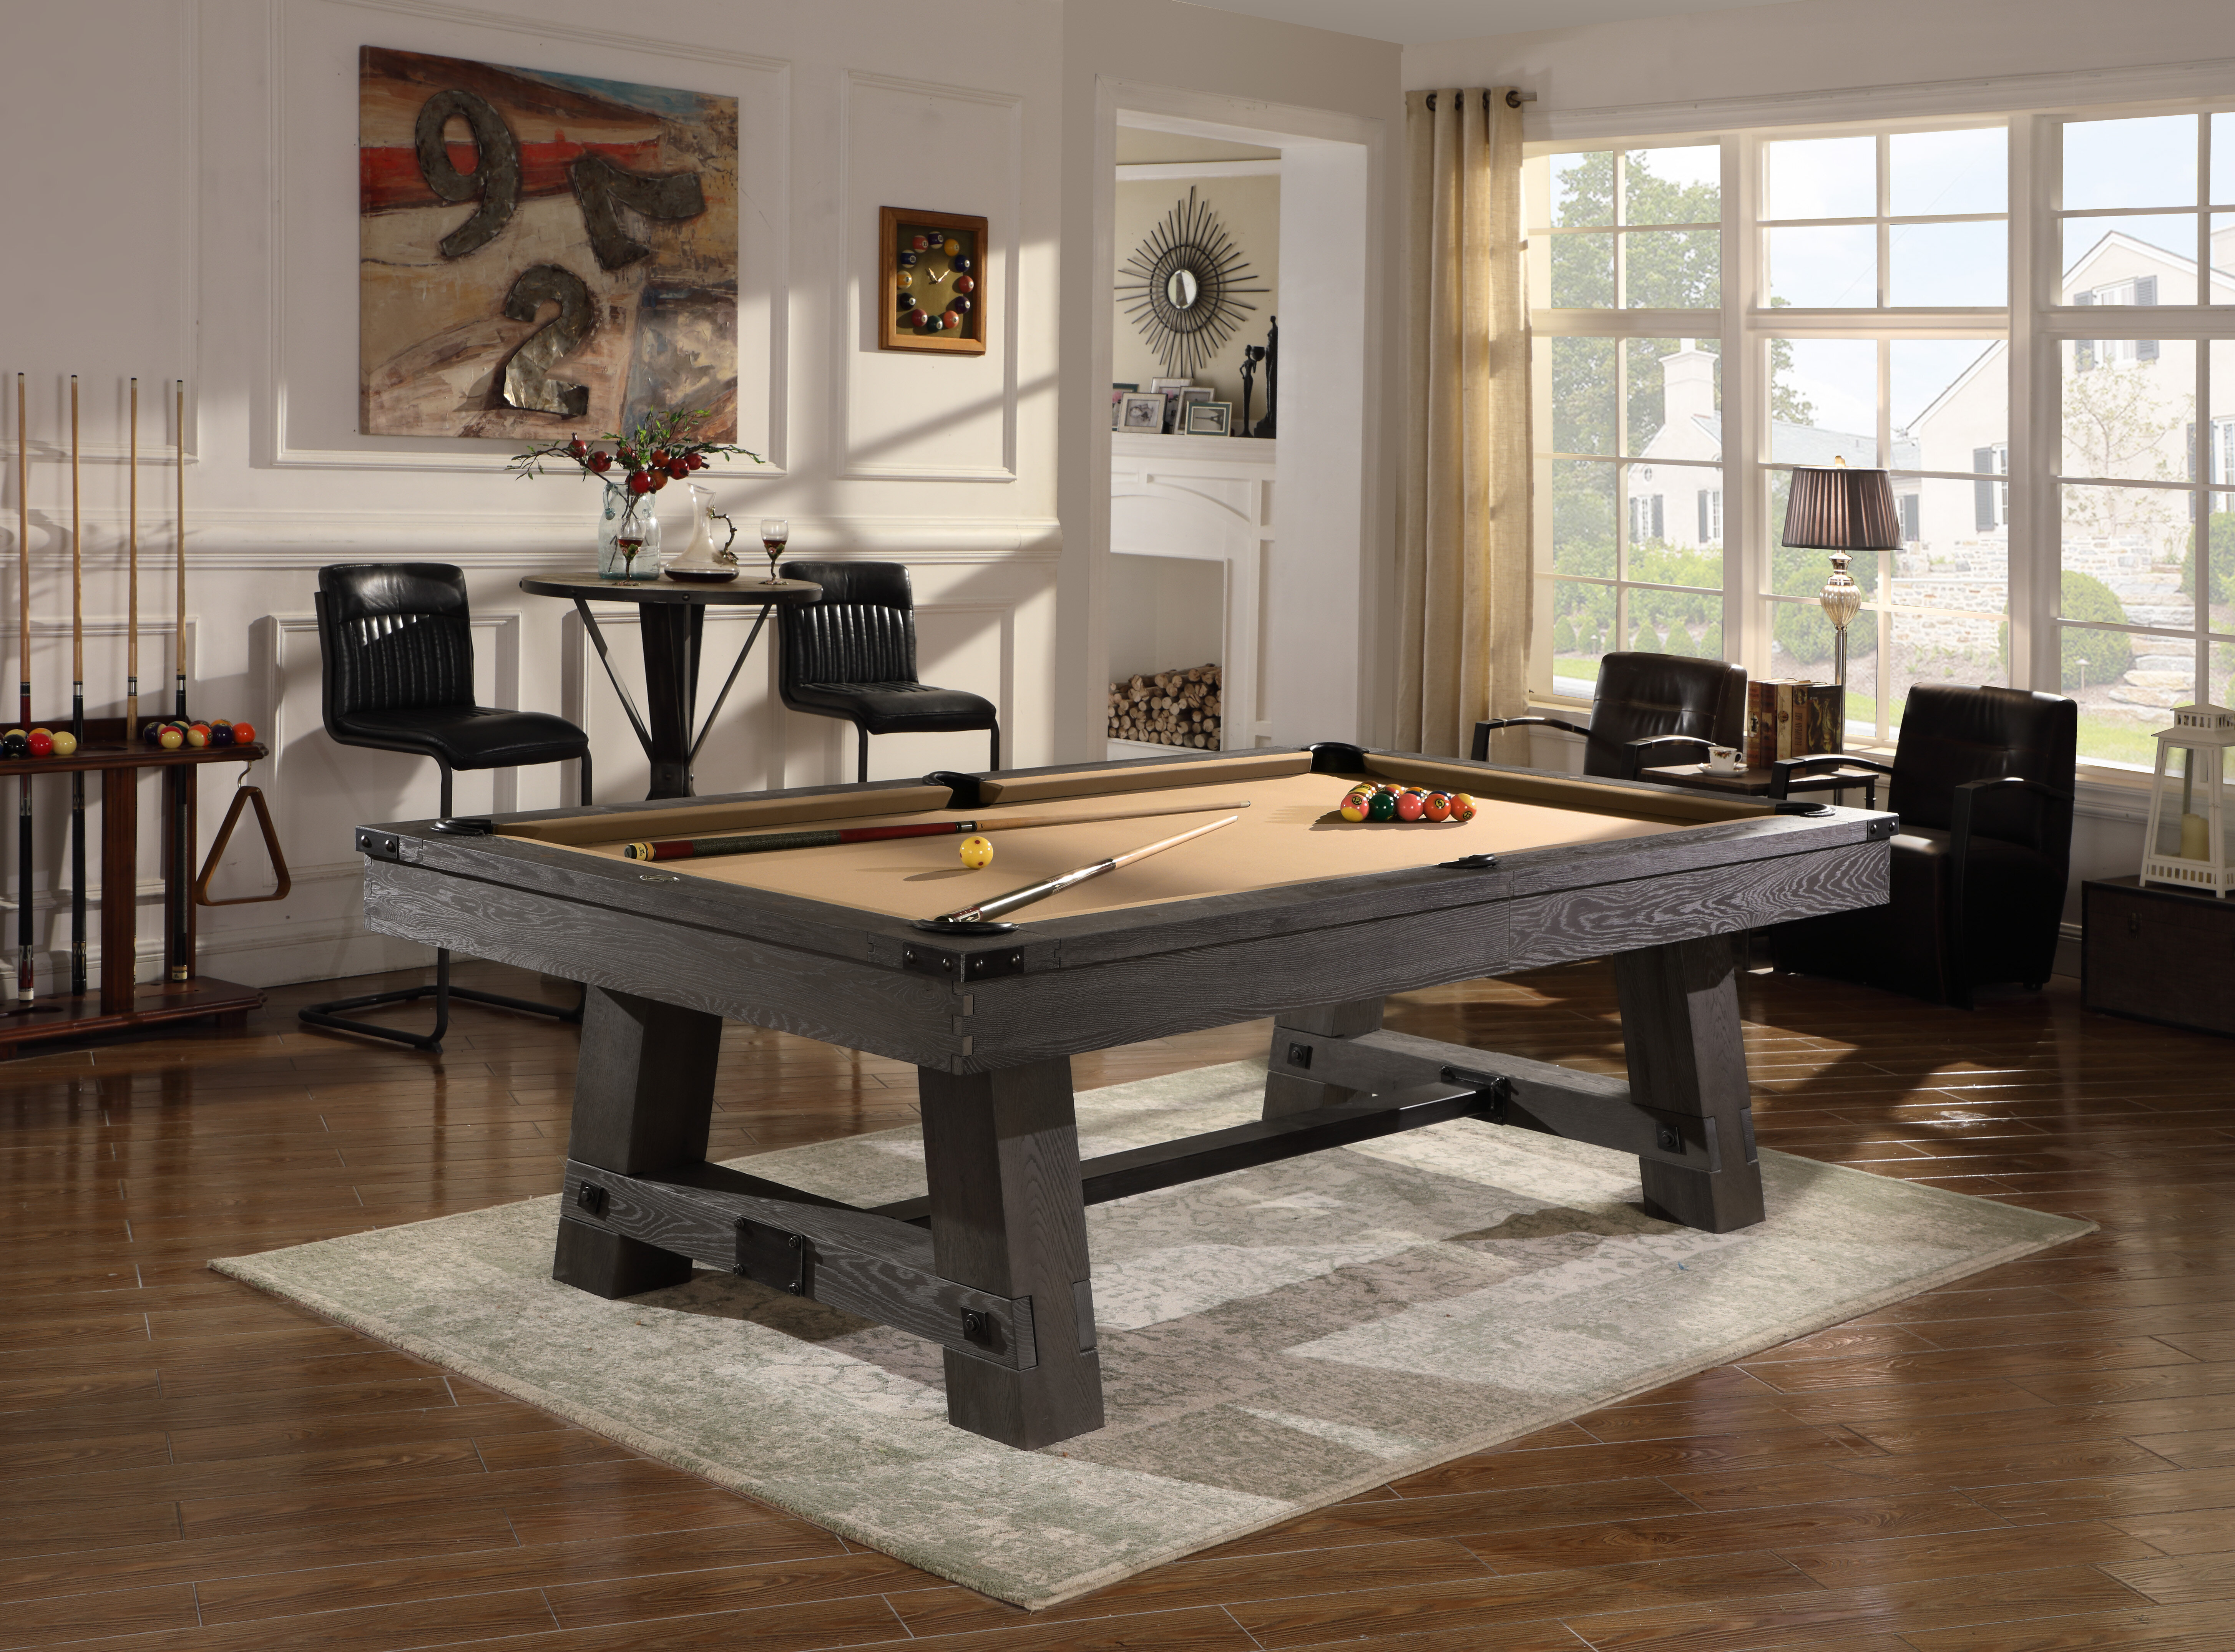 Game Room Ideas: Creating the Ultimate Entertainment Space (With